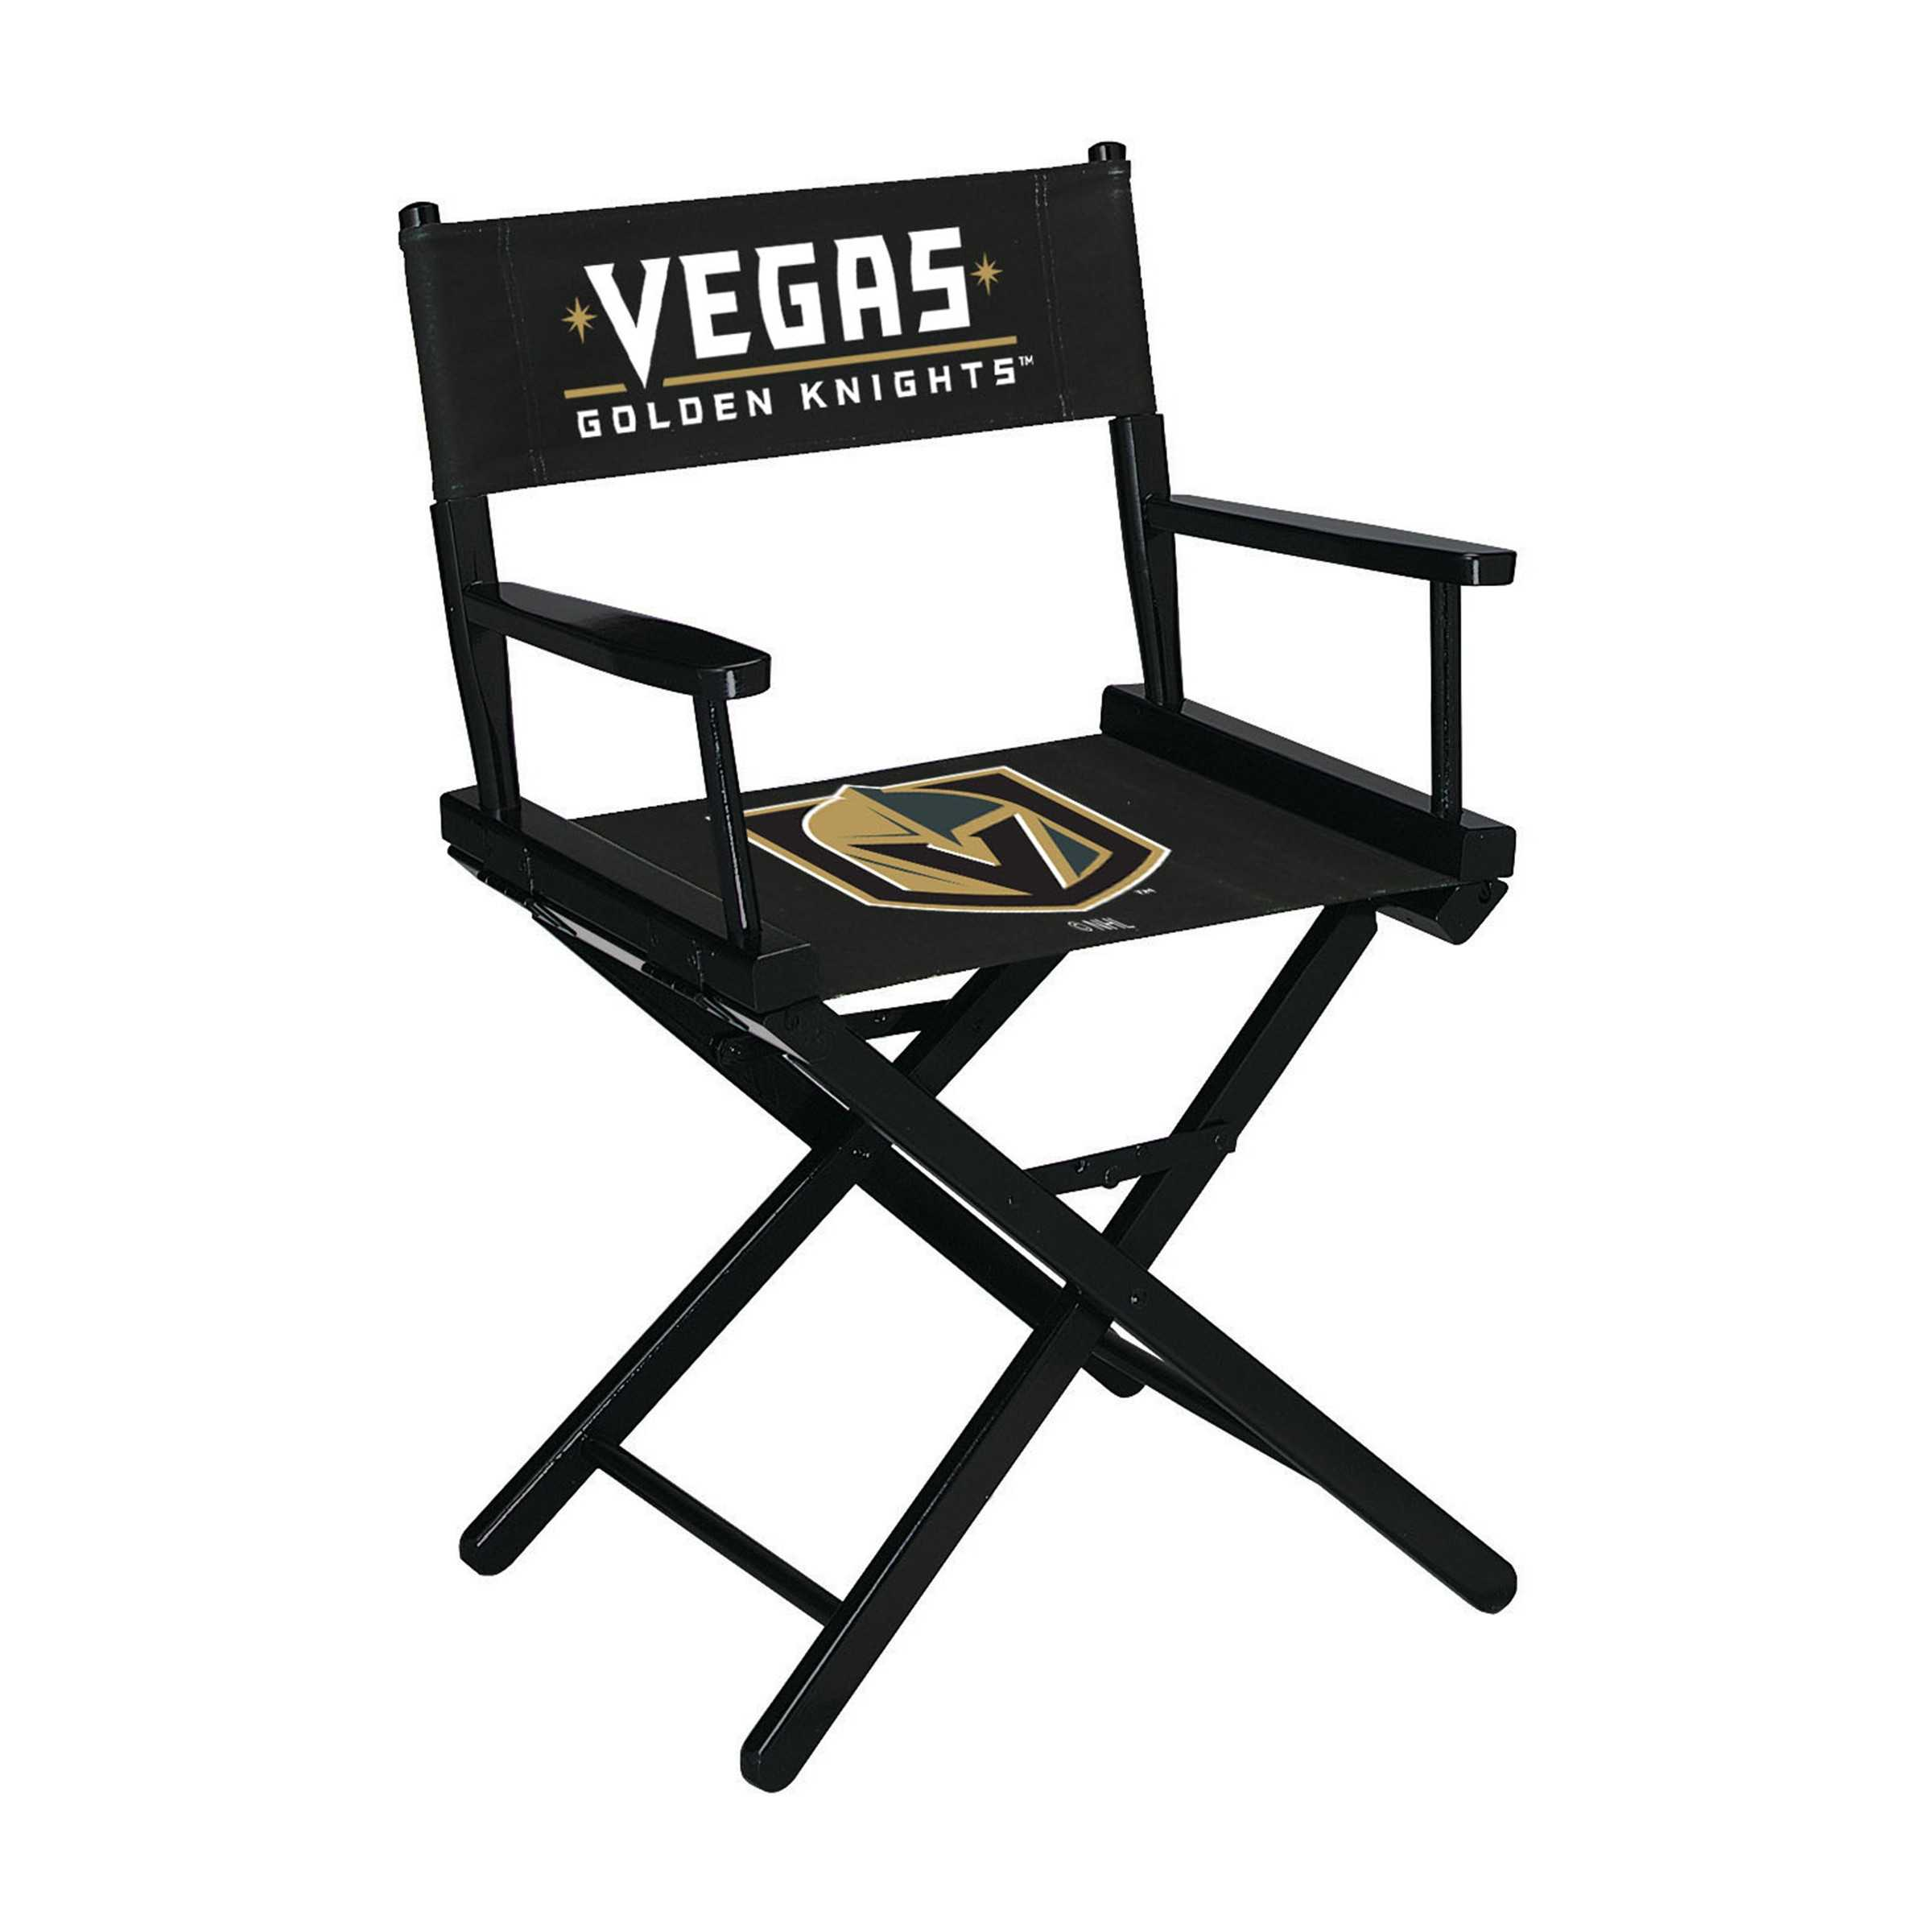 GOLDEN KNIGHTS TABLE HEIGHT DIRECTOR CHAIR